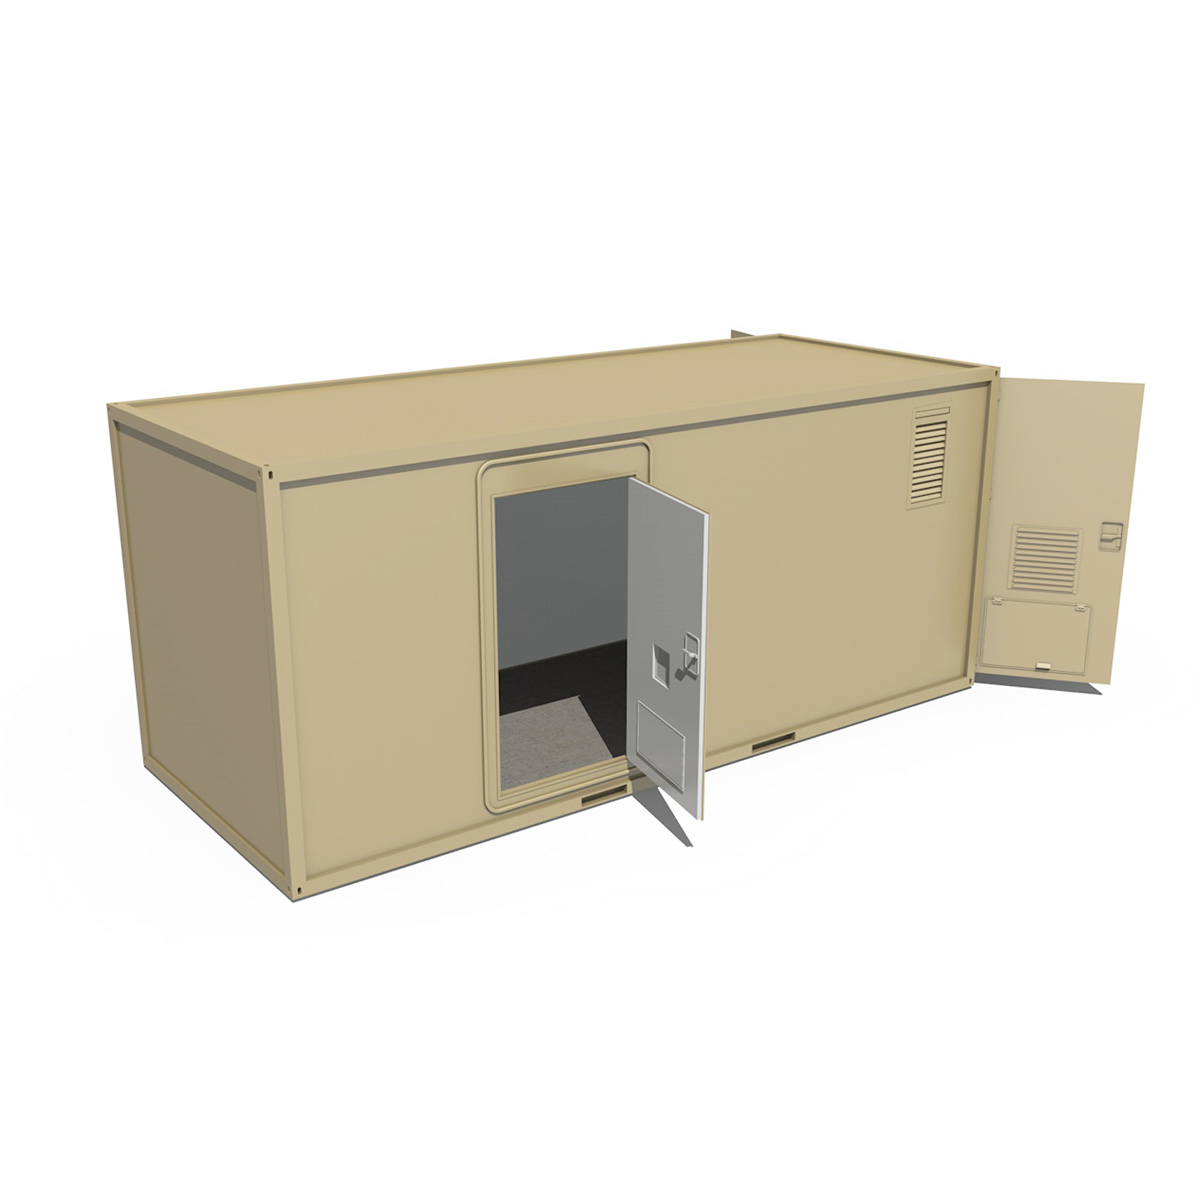 20ft office container version three 3d model 3ds fbx c4d lwo obj 252287